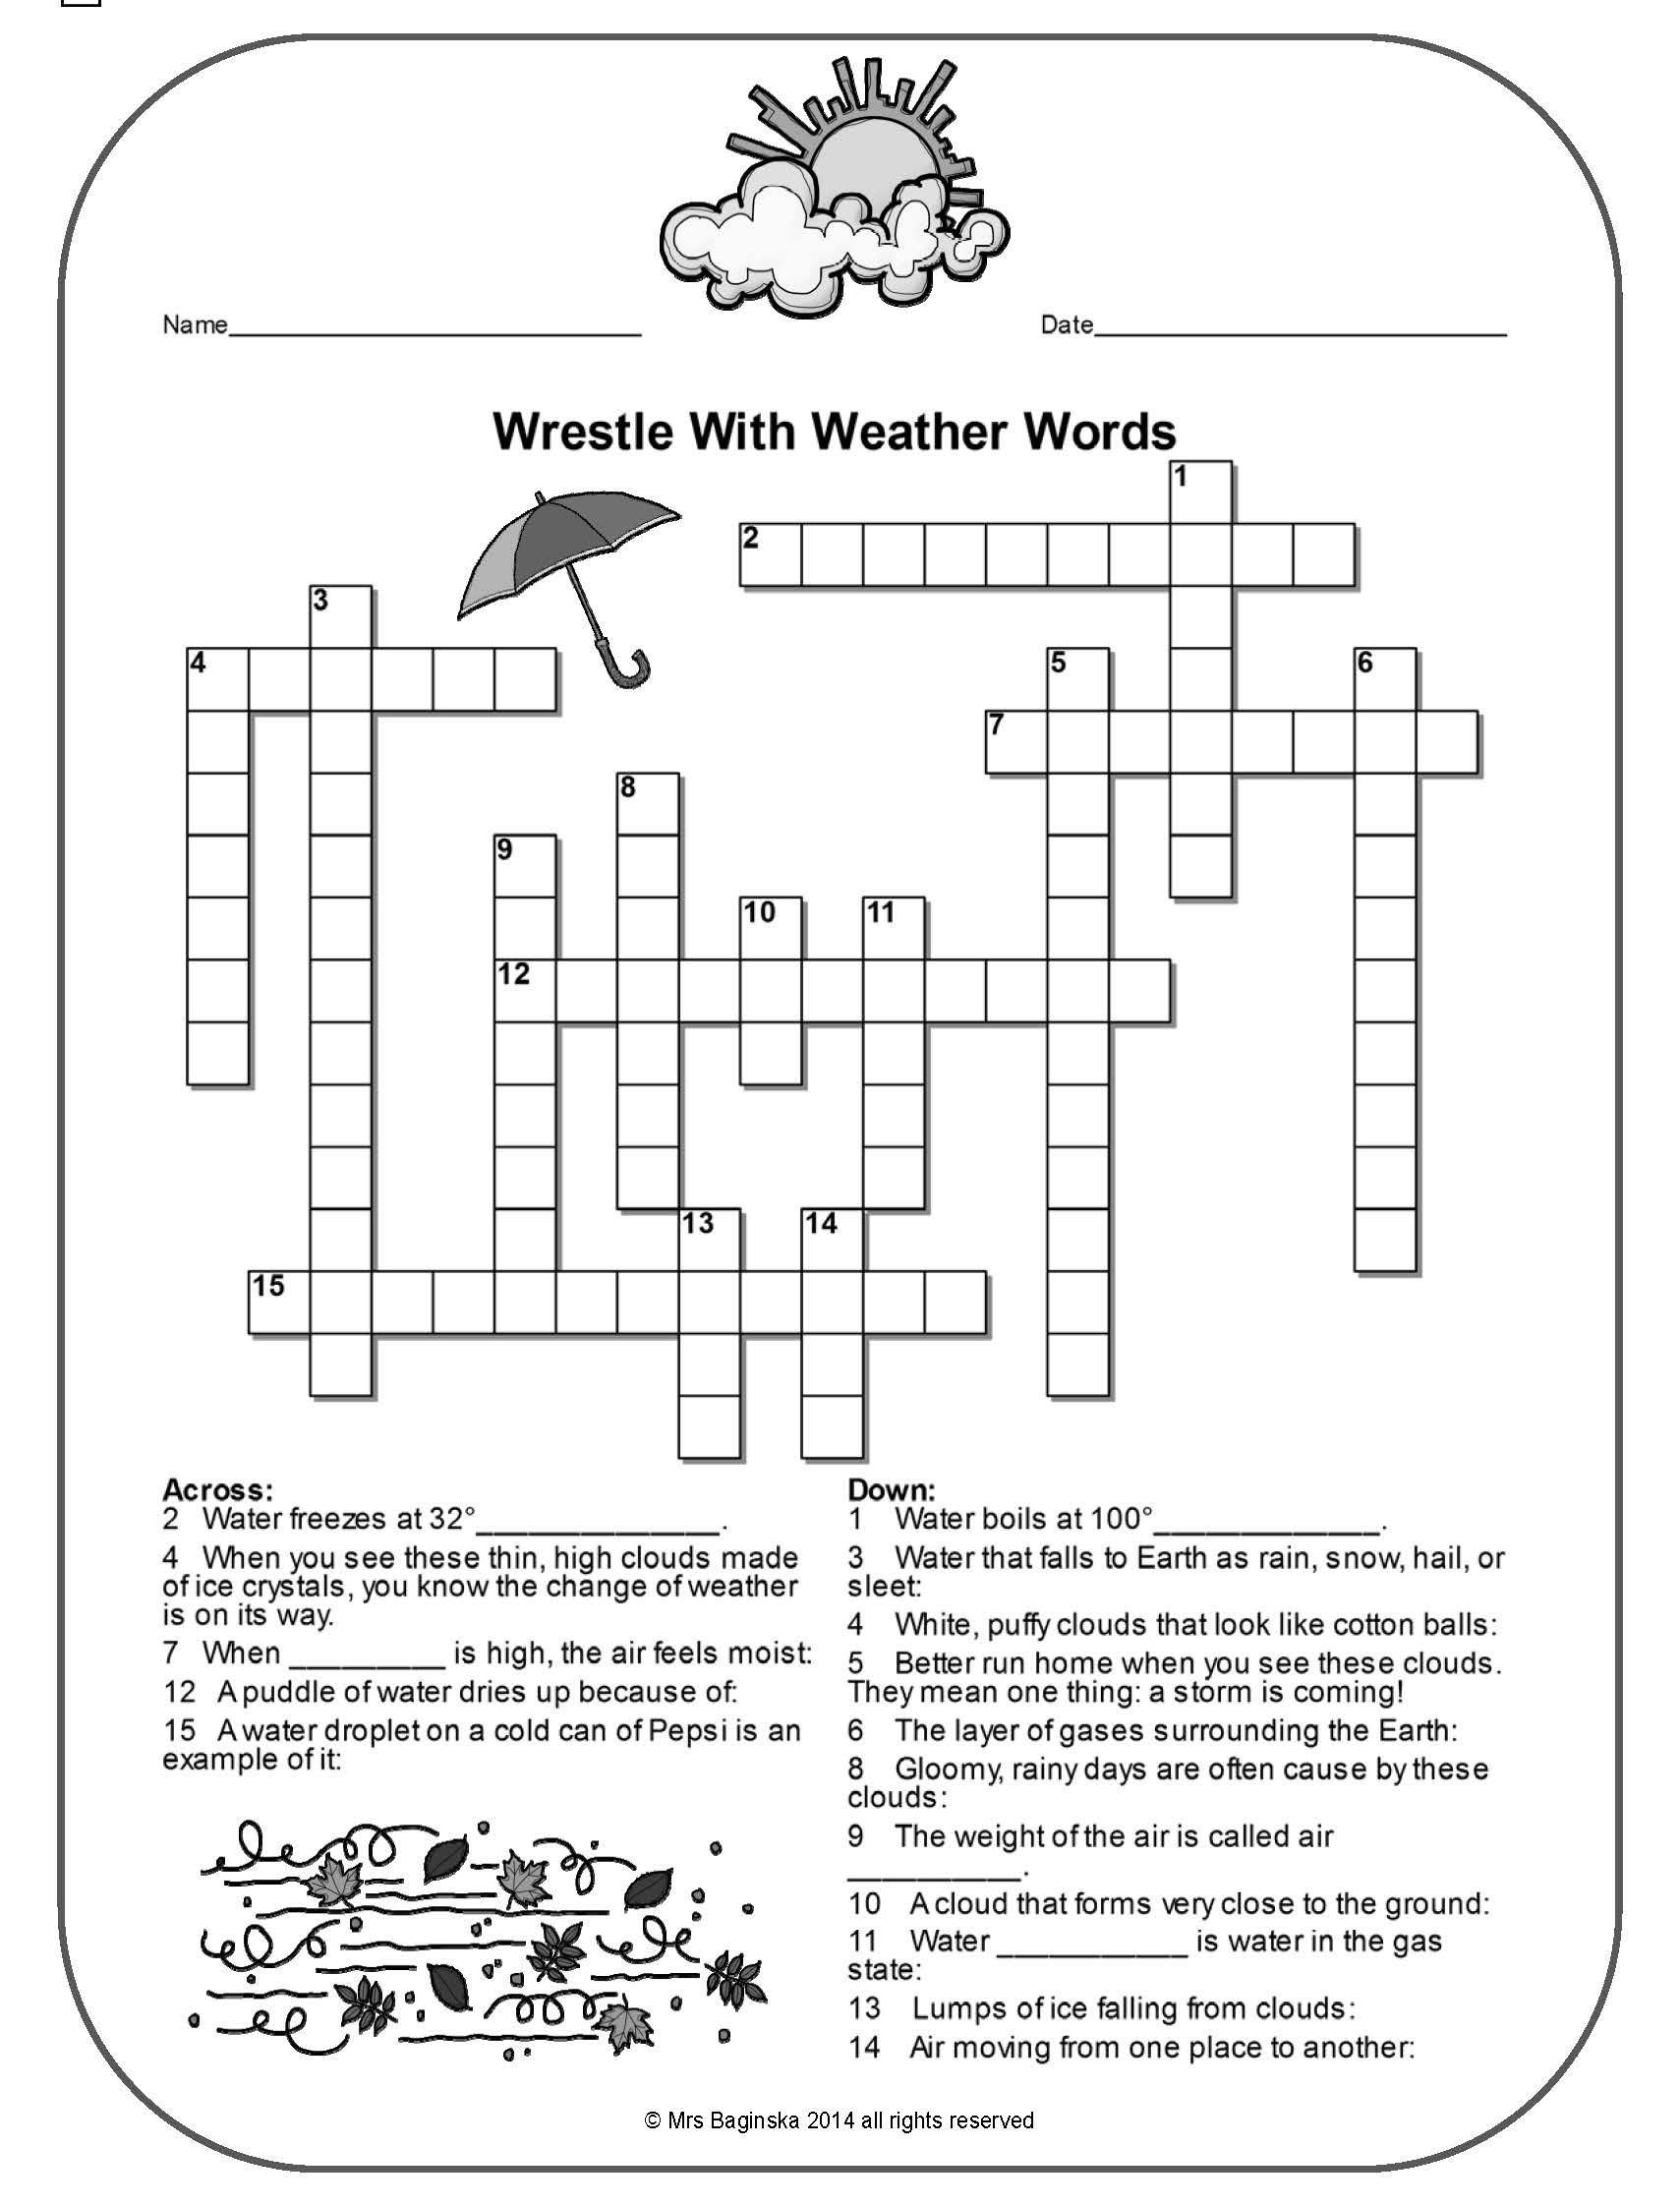 Pina Demanding 4Th Grade Teacher On Tpt Free Lessons | Weather - 4Th Grade Crossword Puzzles Printable